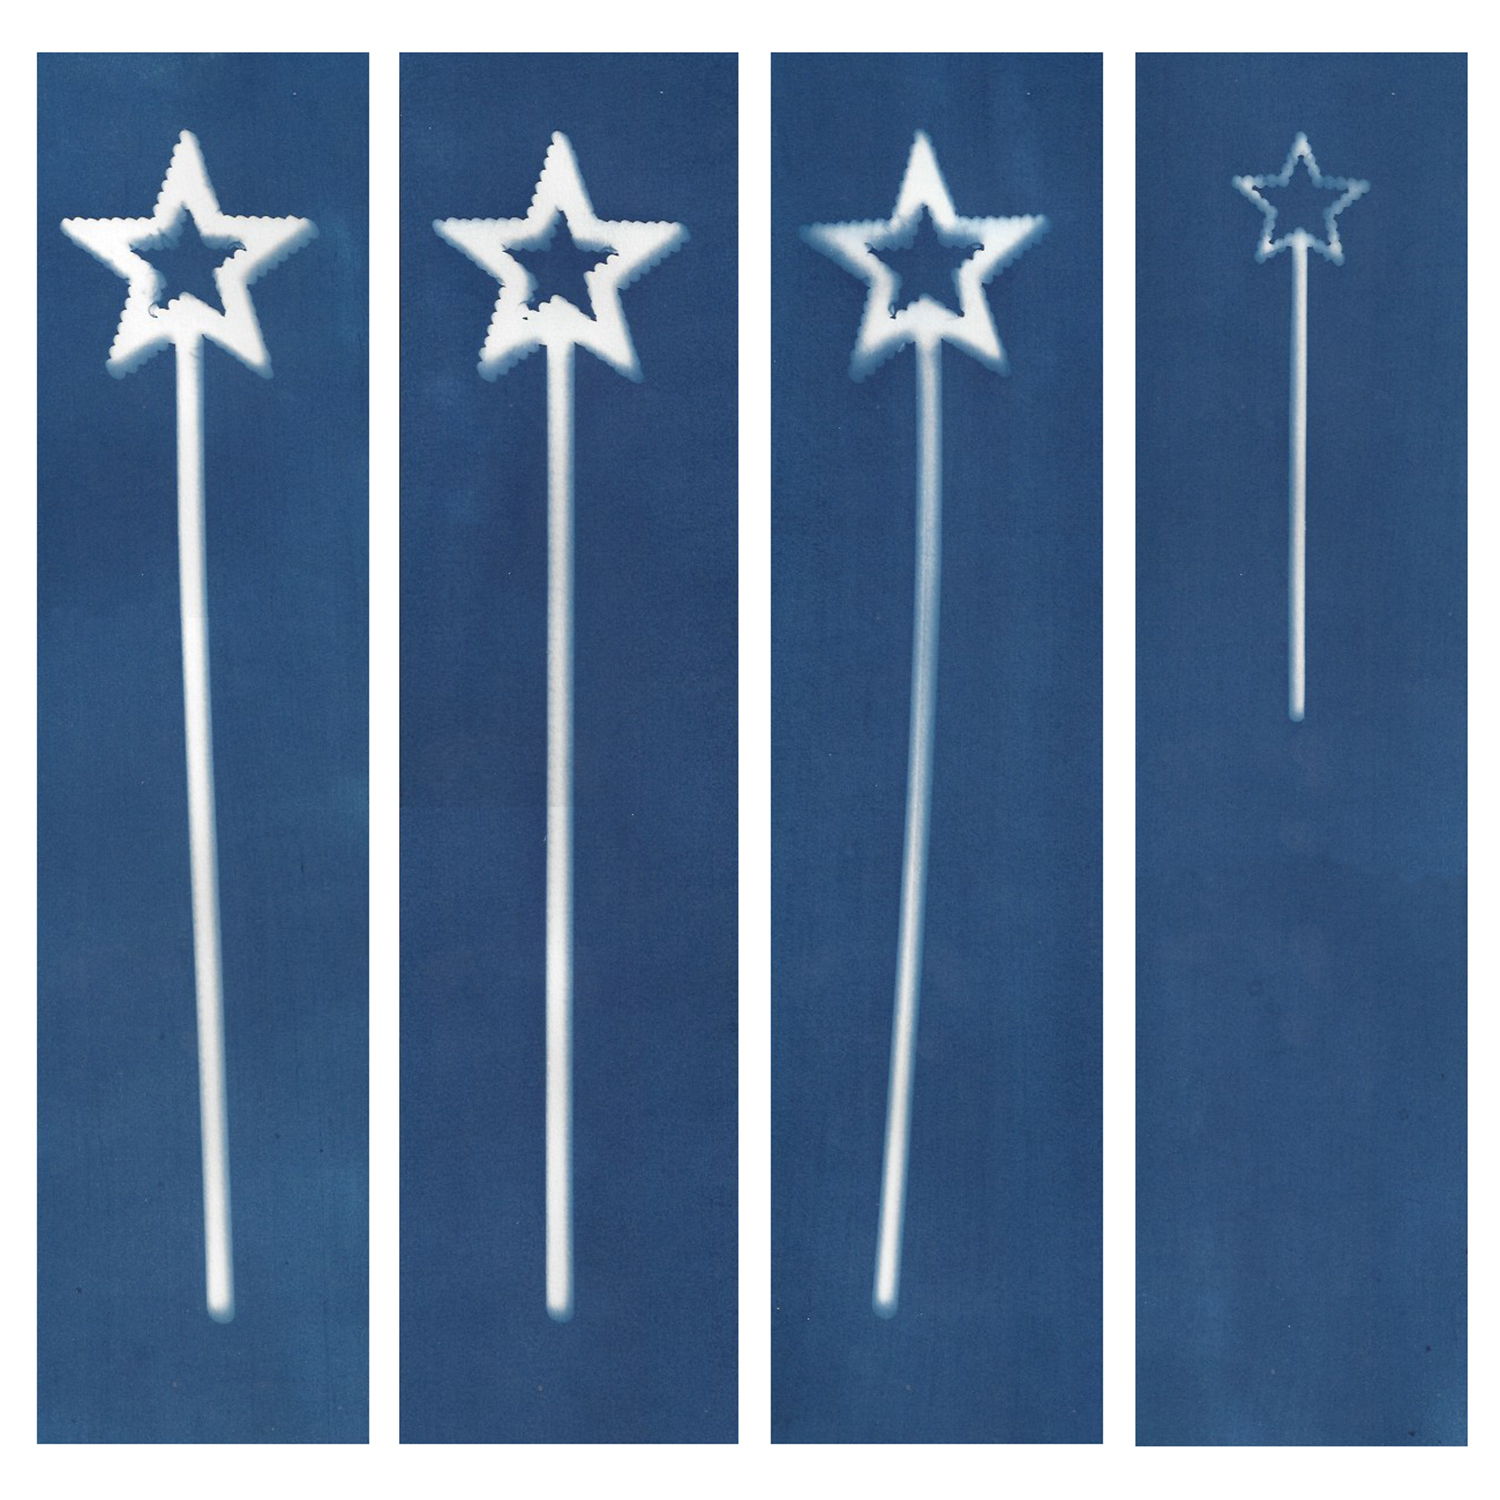 Sarah Irvin, Cyanotype Archives: Star Wands, 2019, Cyanotype, 16 1/4 x 24 inches